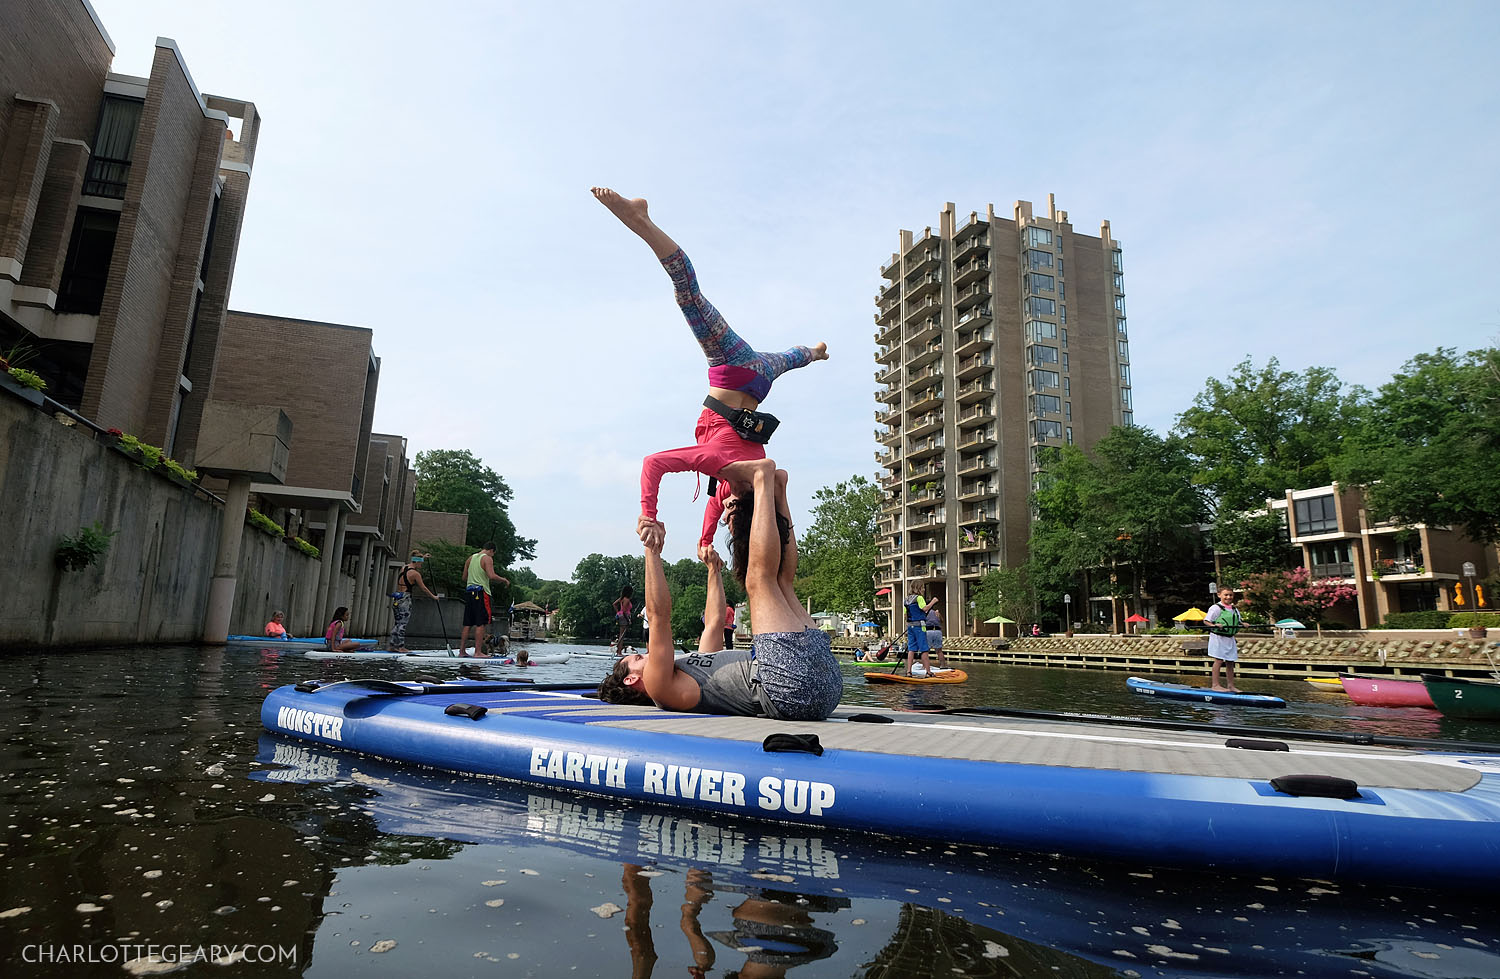 Acro yoga on paddleboards